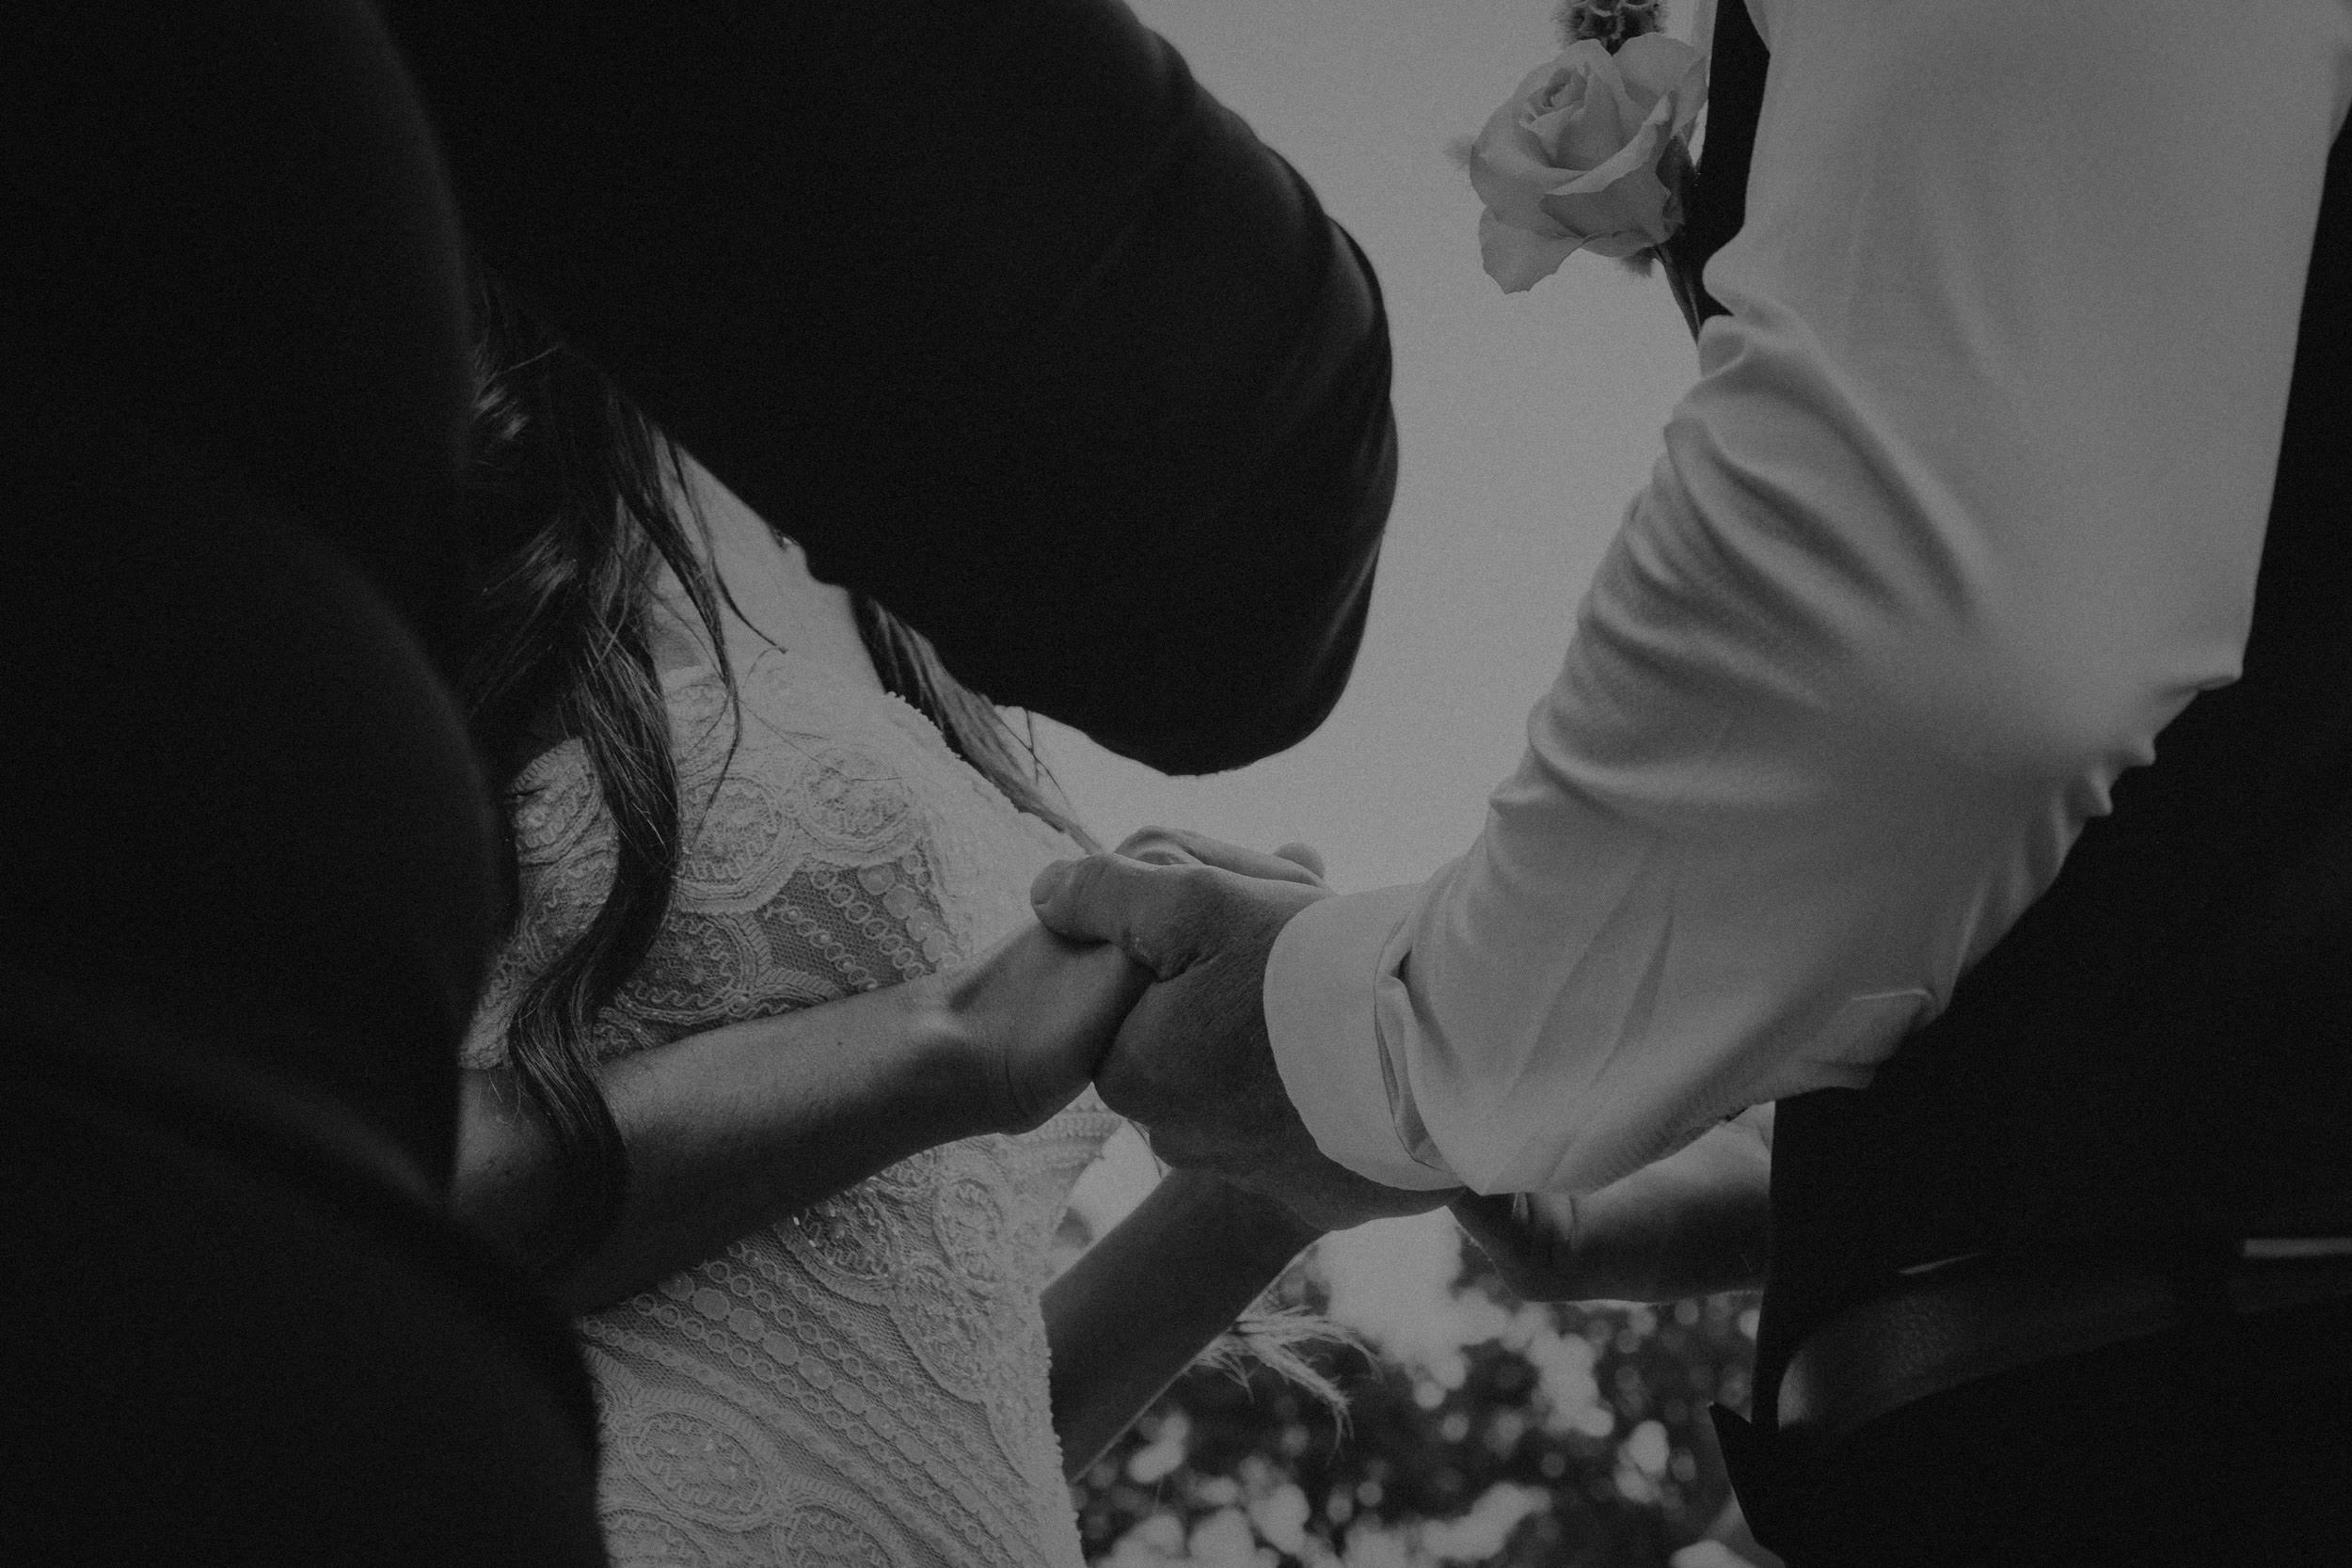 A black and white wedding photo of a bride and groom during their ceremony at Seclusions